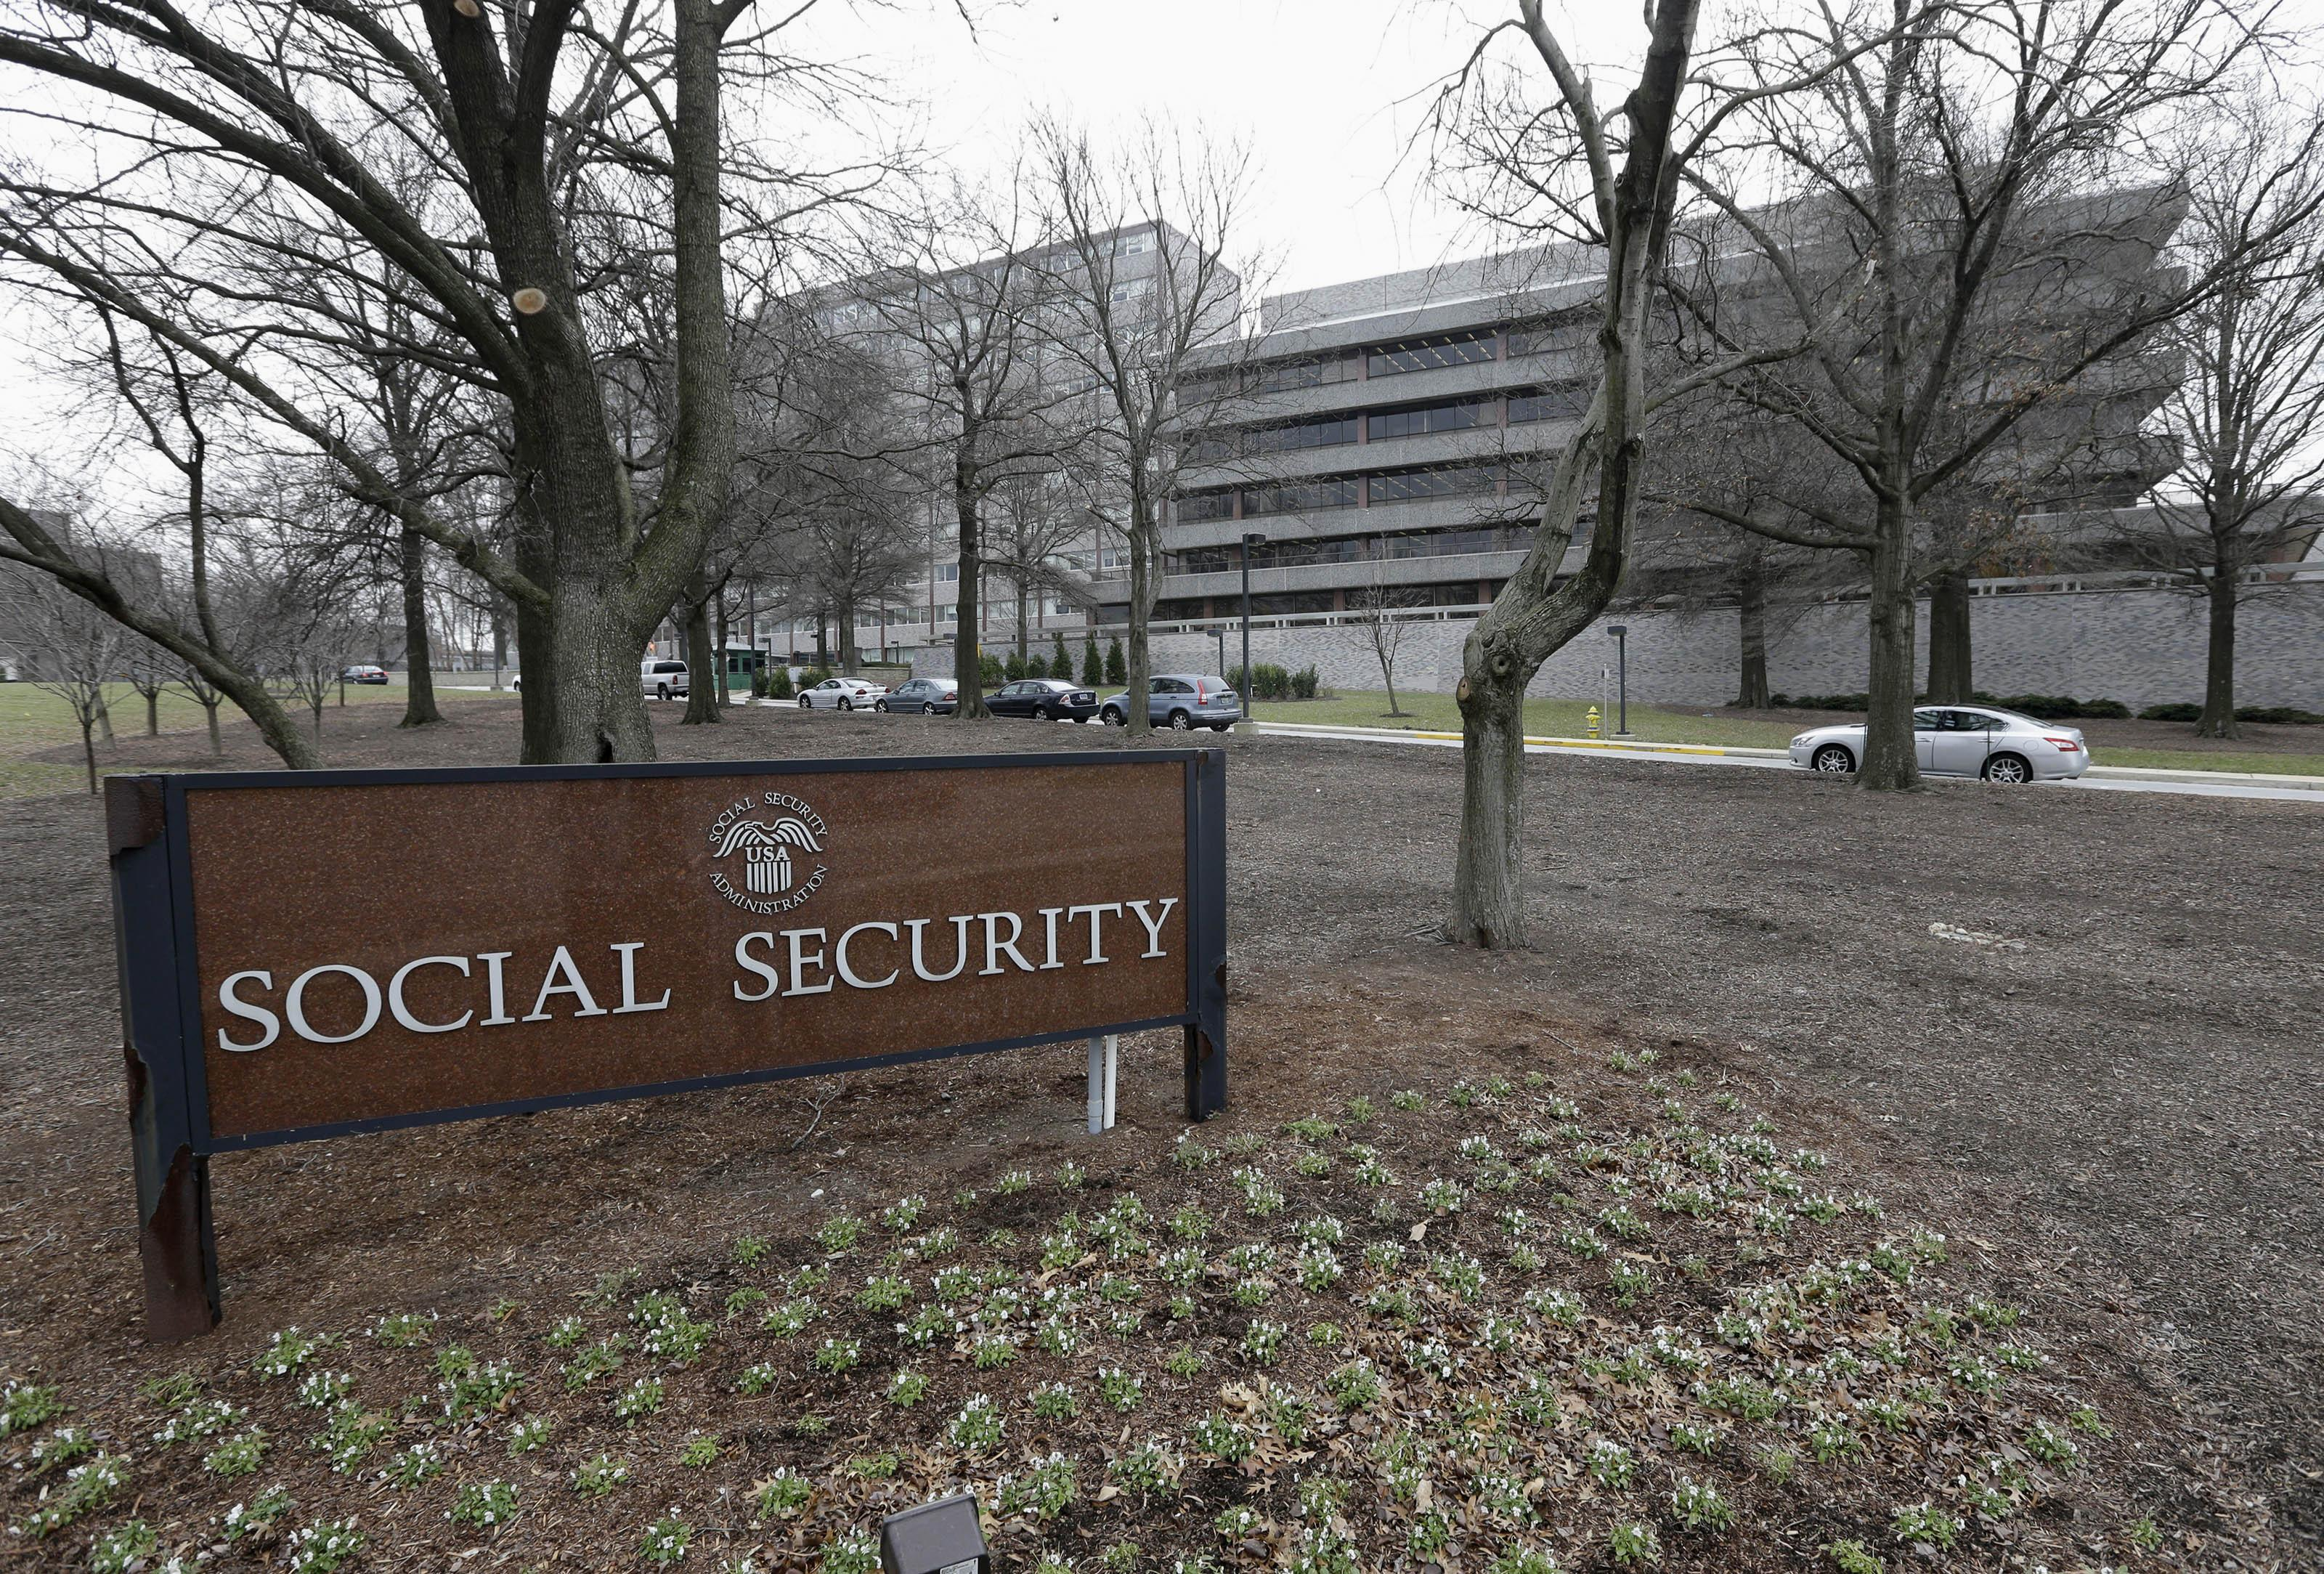 6.5M people with active Social Security numbers are 112 or older: IG